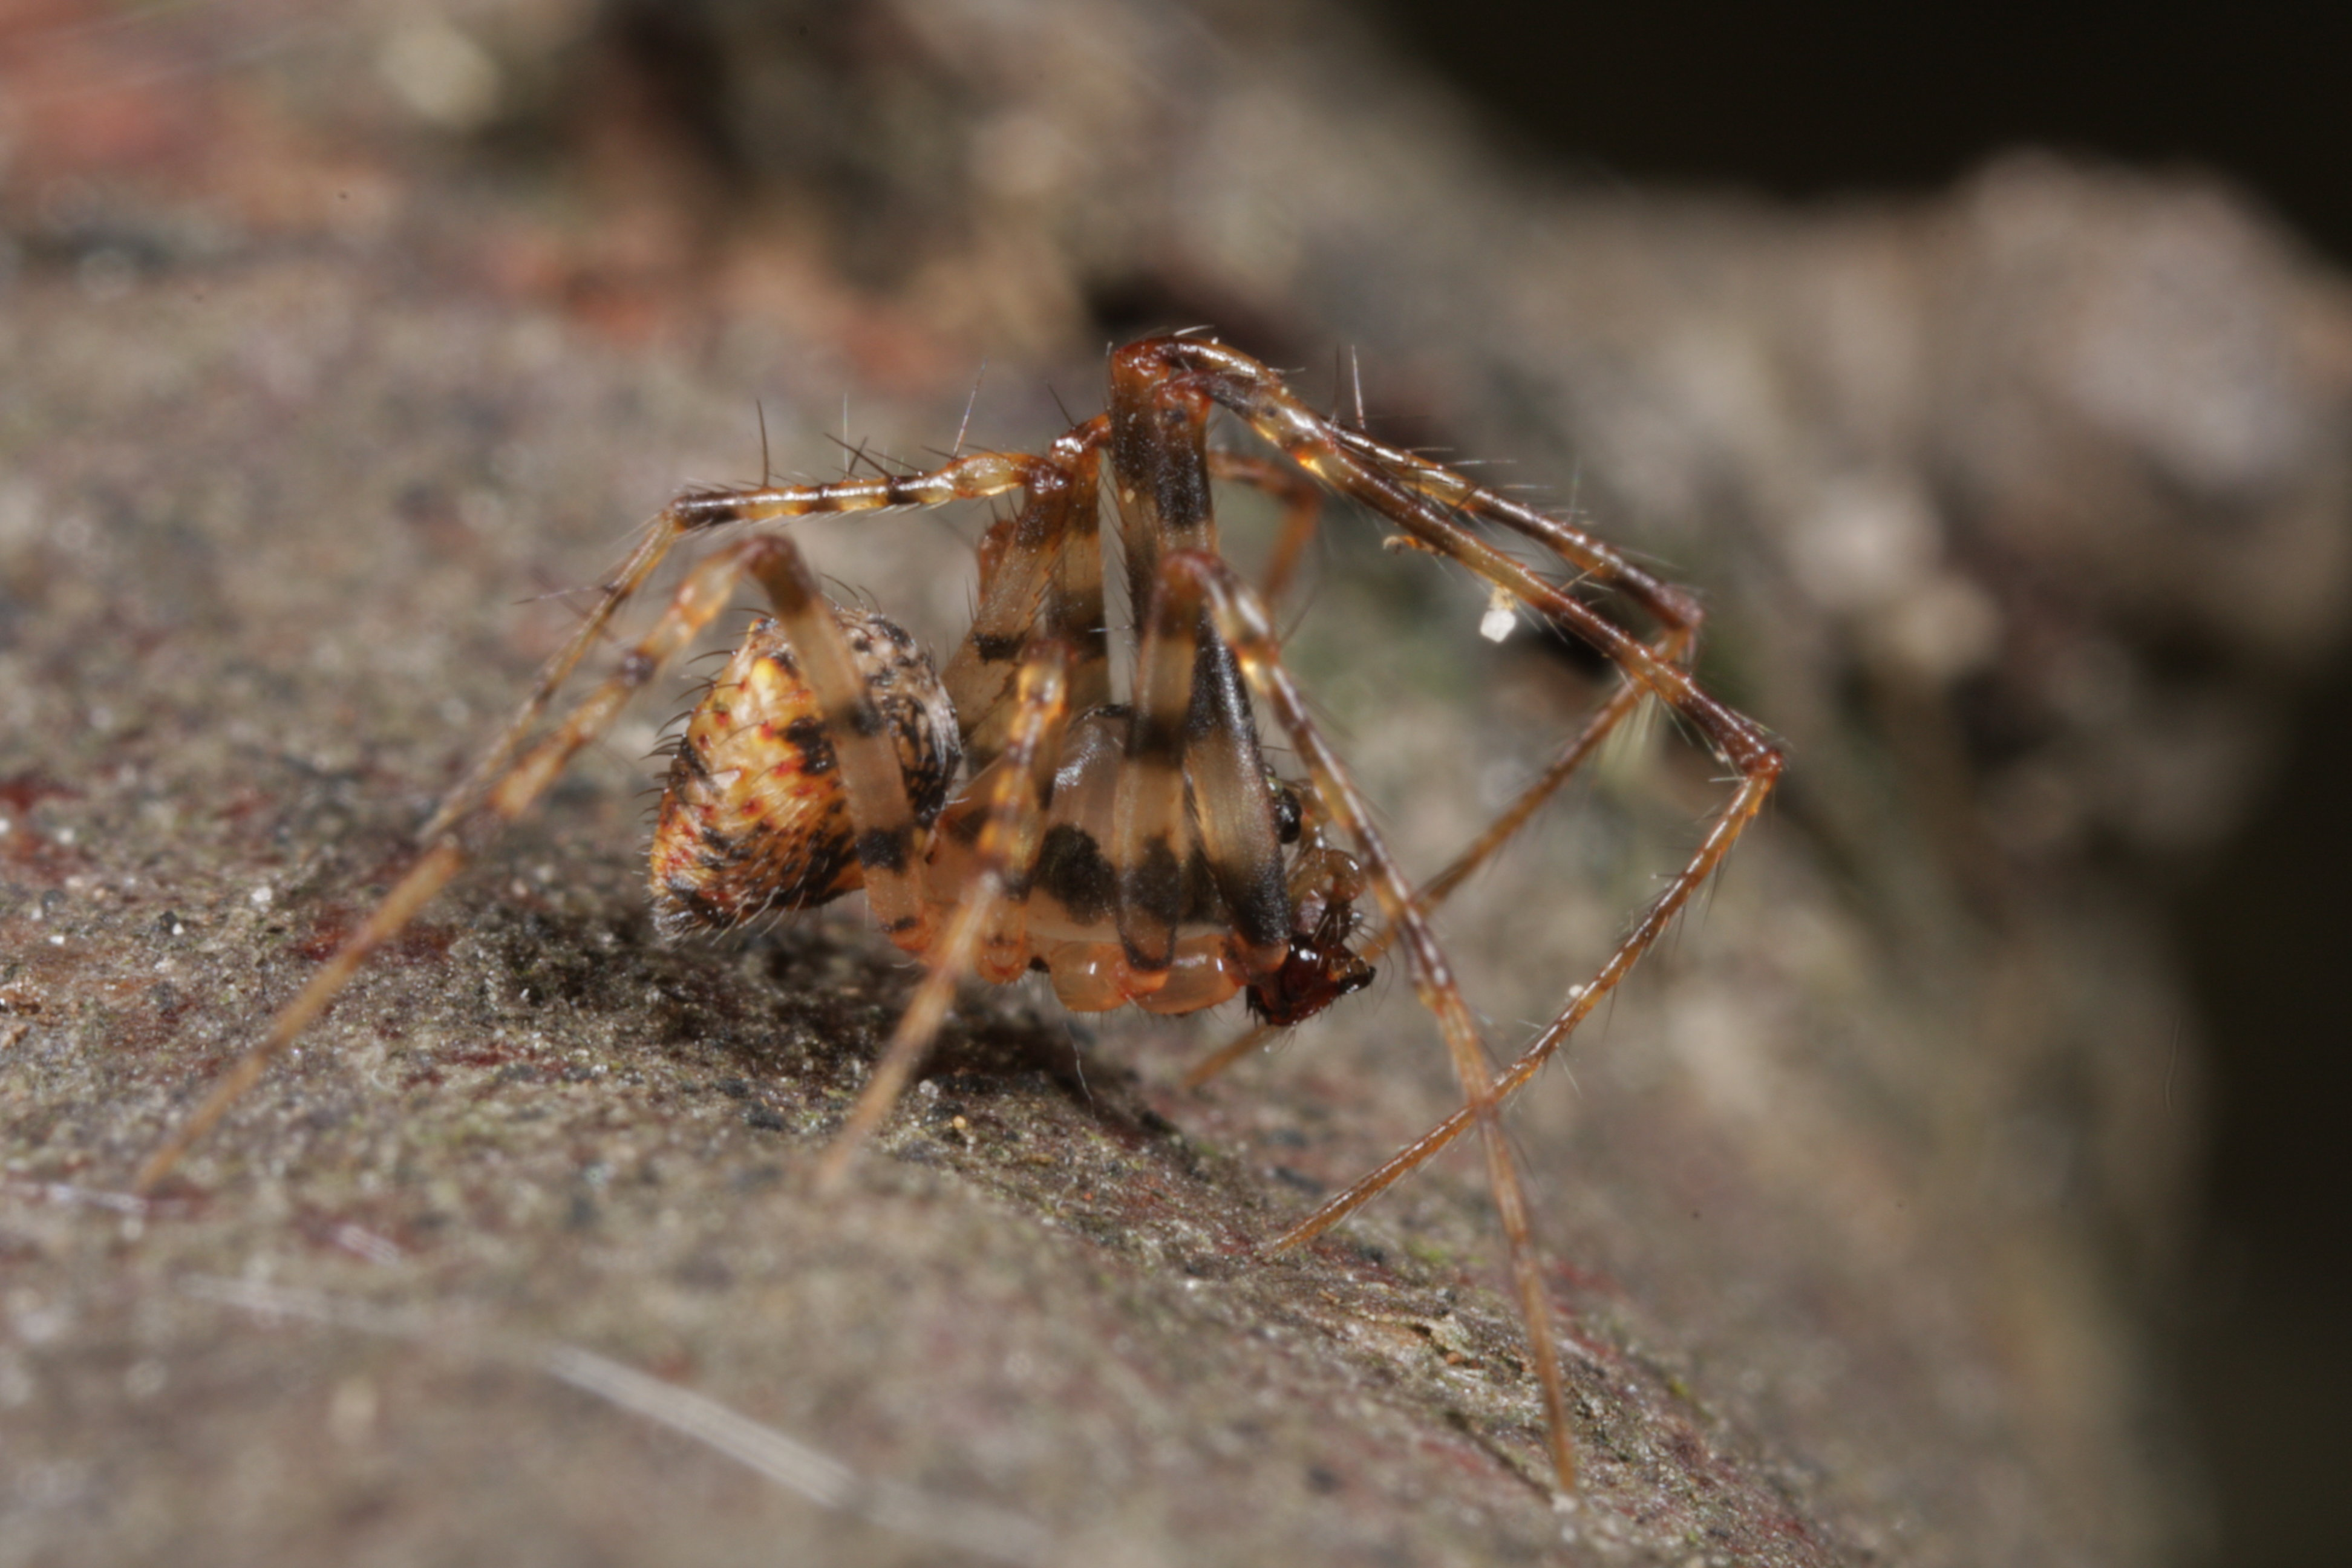 Male pirate spider in lateral view (Photo: G. Loos)